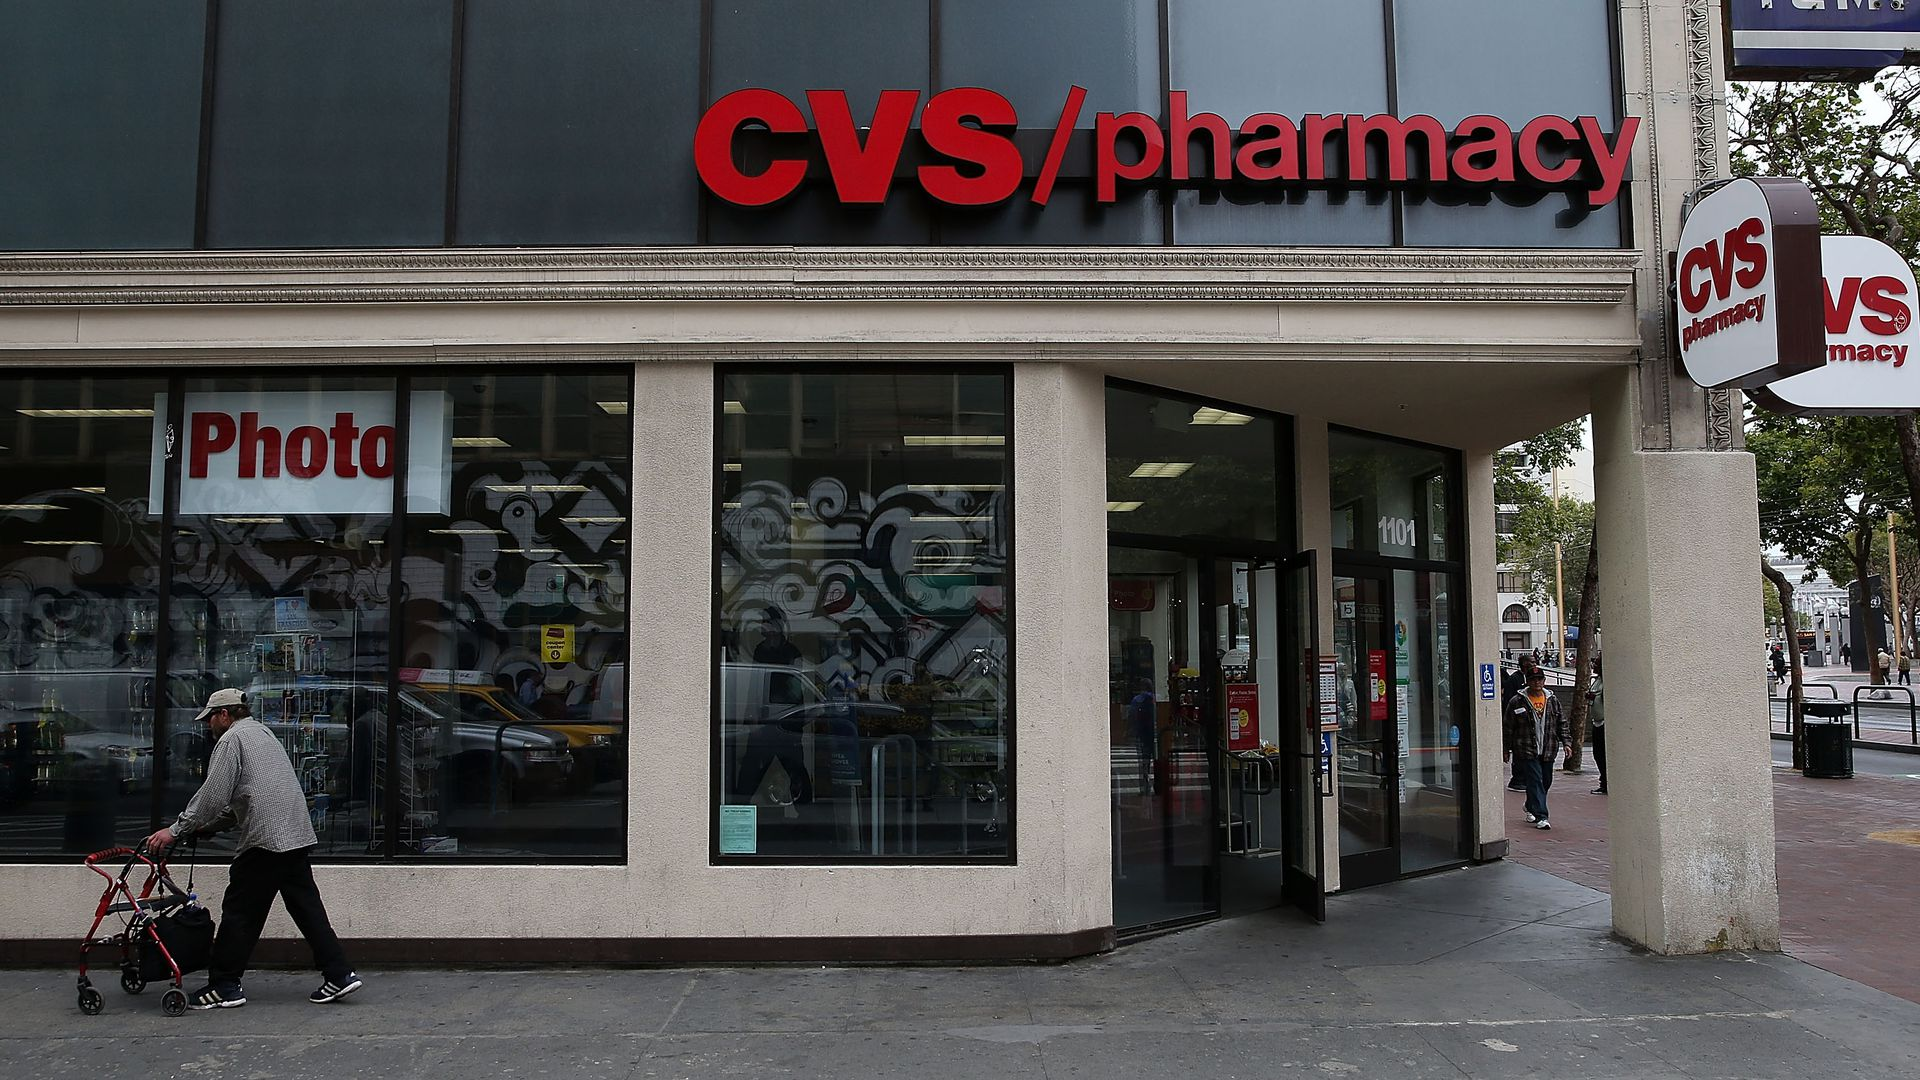 CVS and Aetna are still fighting their merger in court - Axios